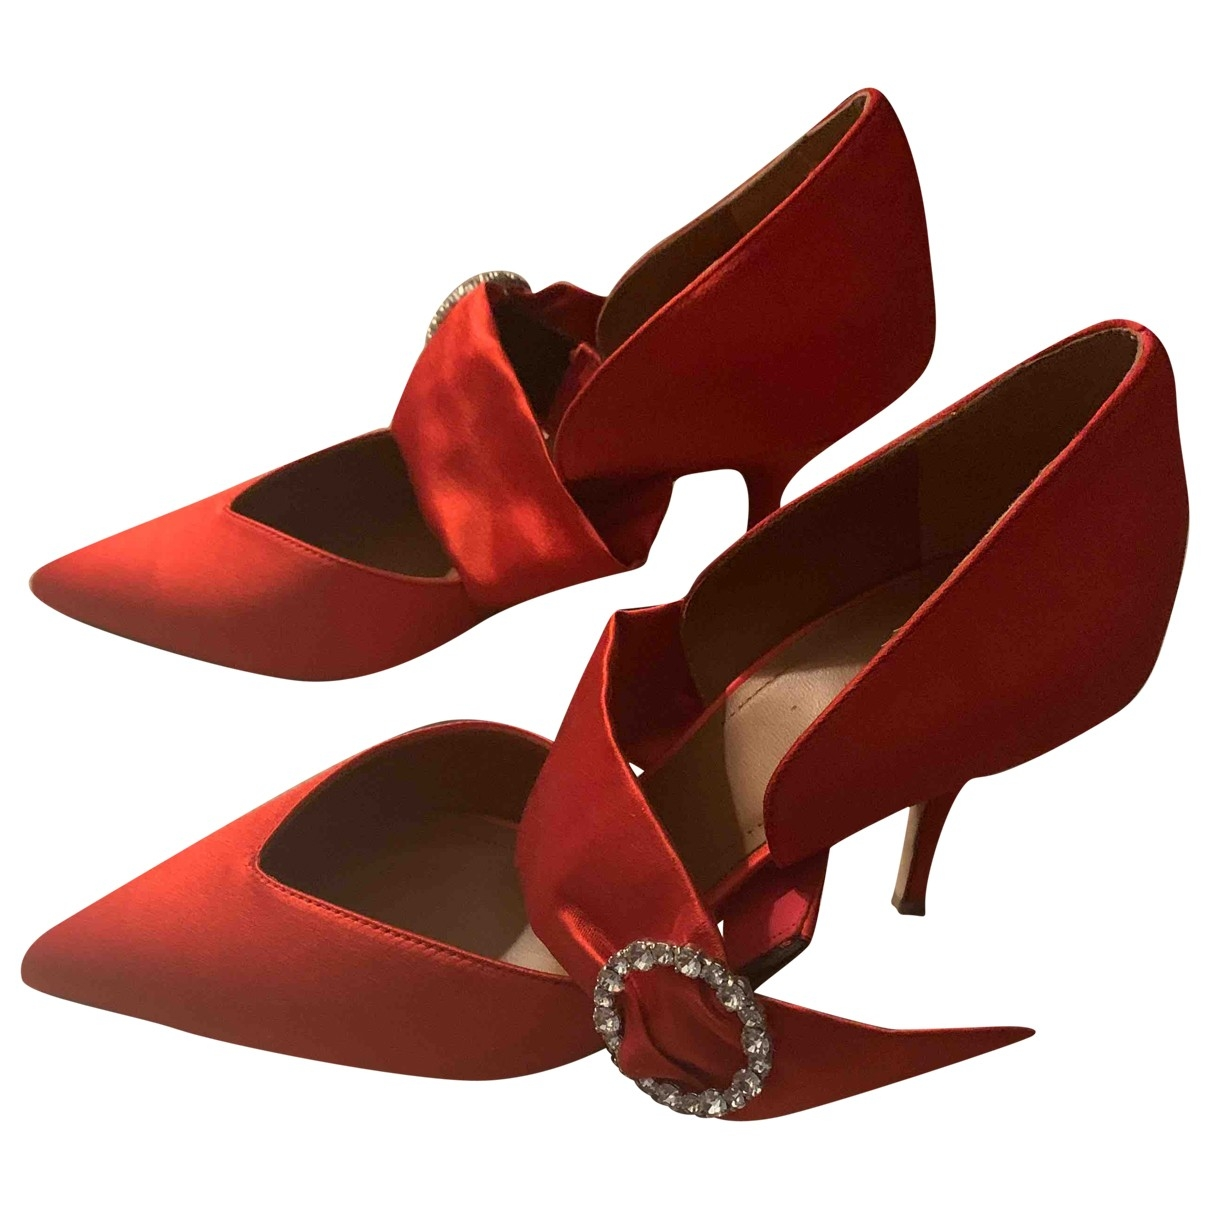 Malone Souliers \N Pumps in  Rot Samt